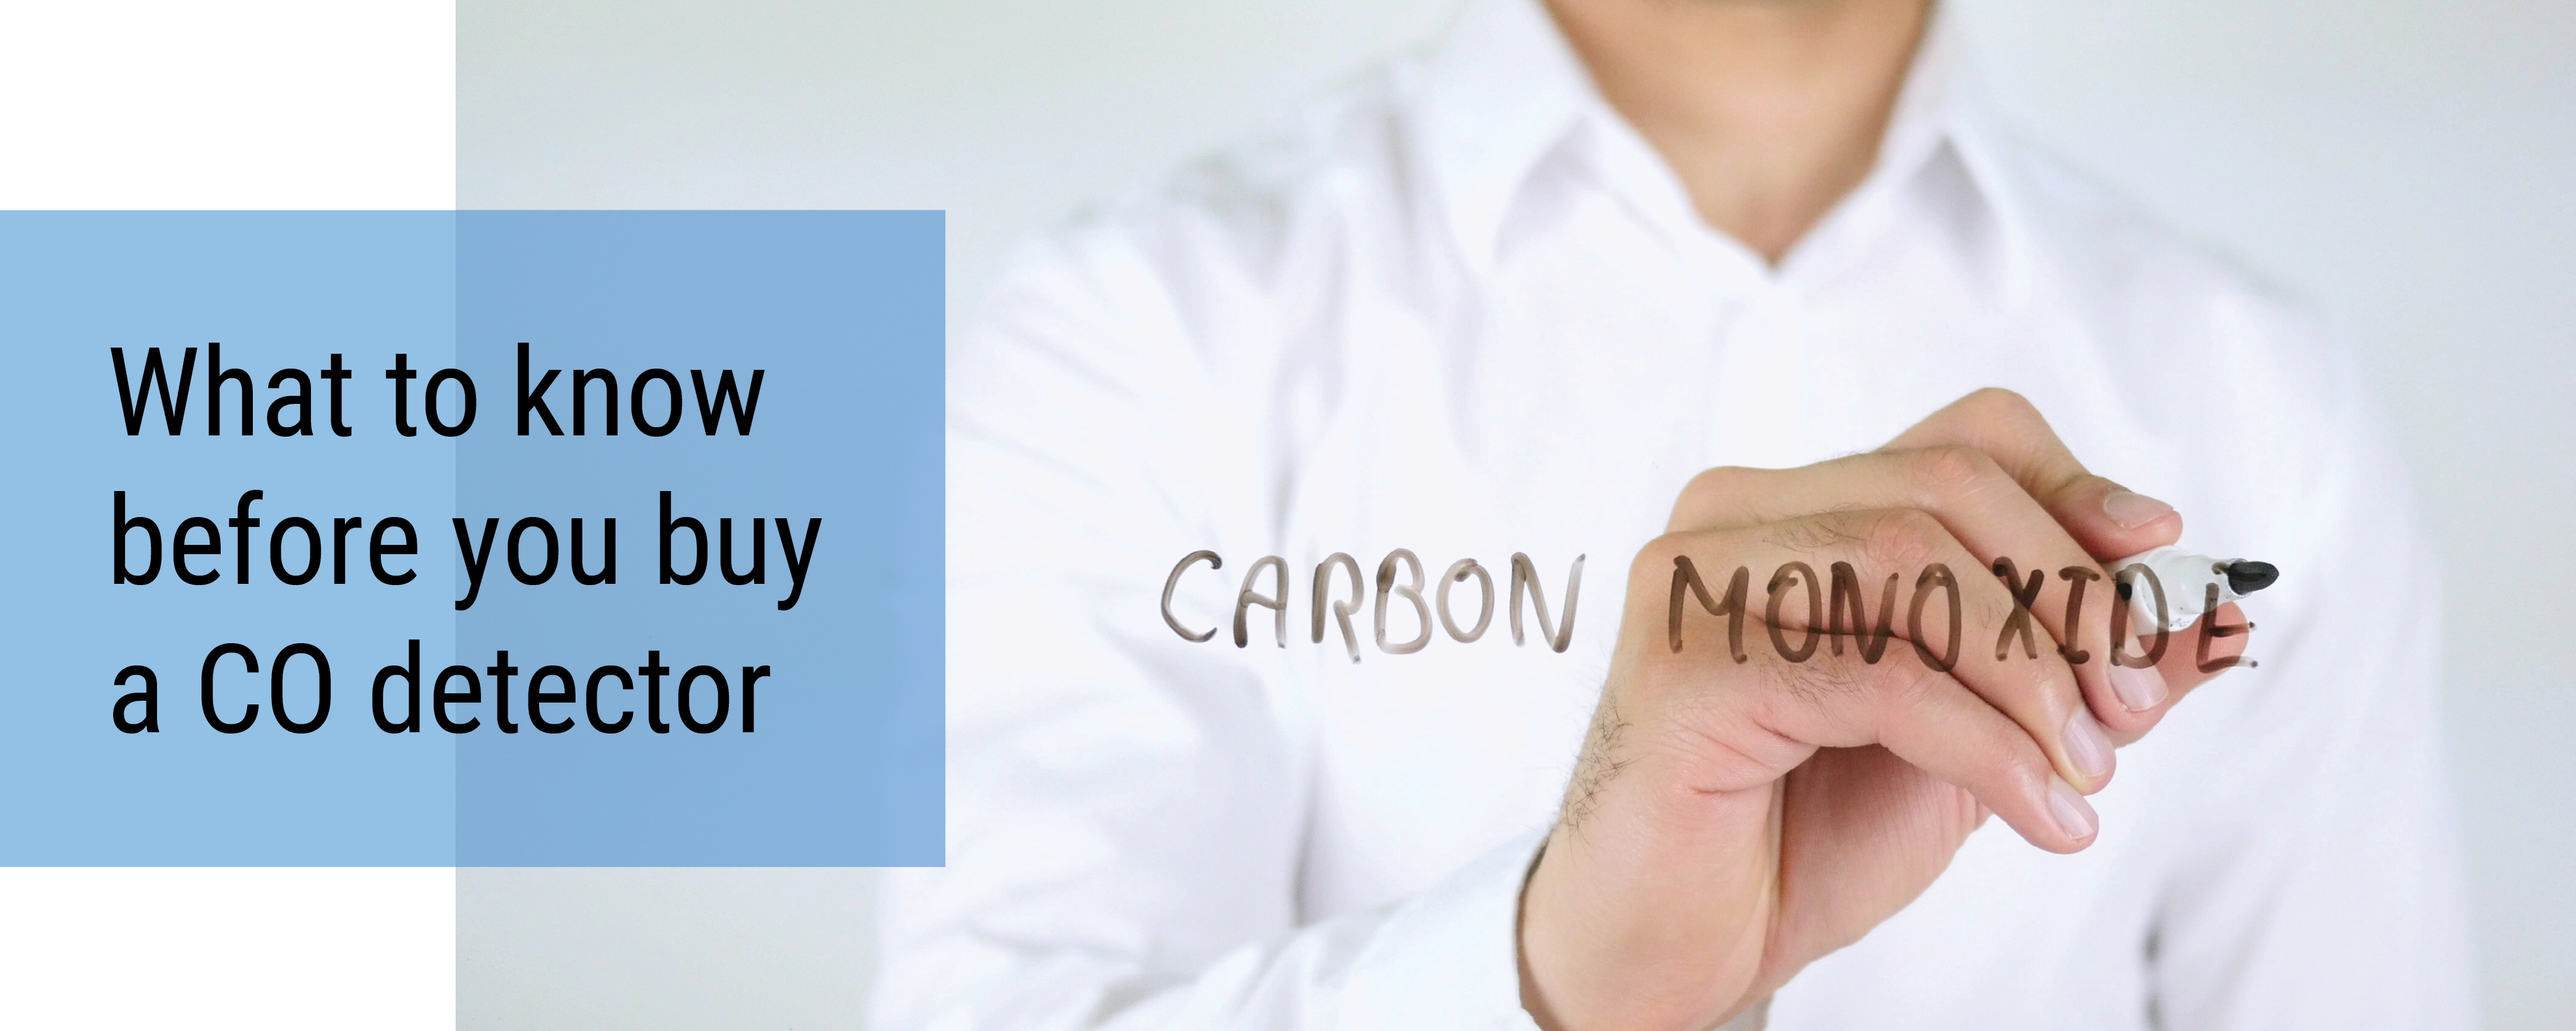 co-banners-carbon-monoxide-on-glass-2.png